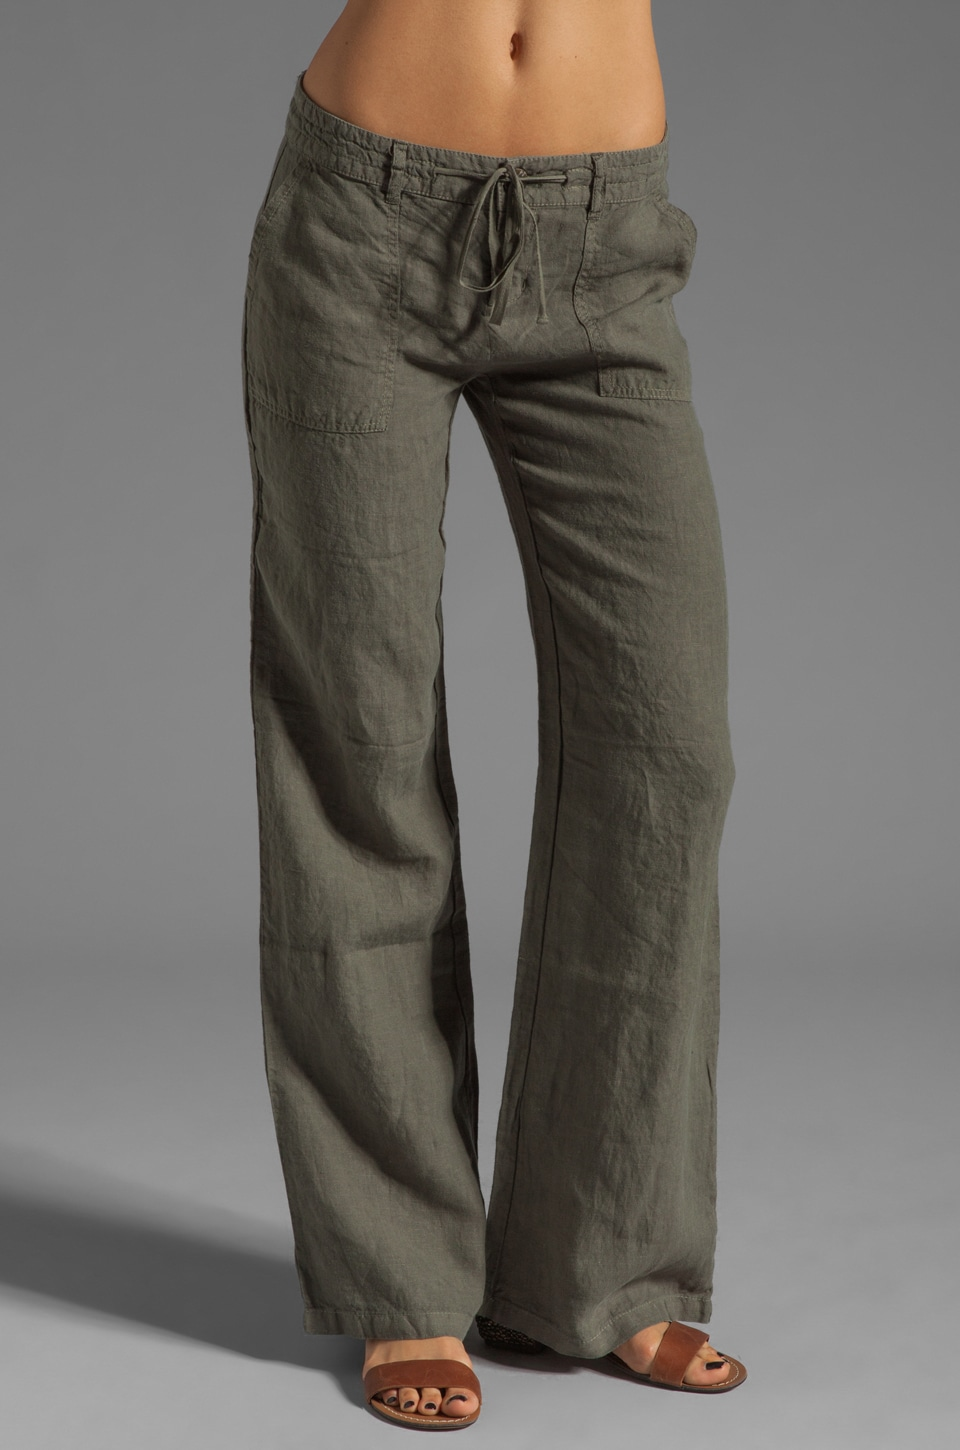 Joie Maretta Linen Pants in Fatigue